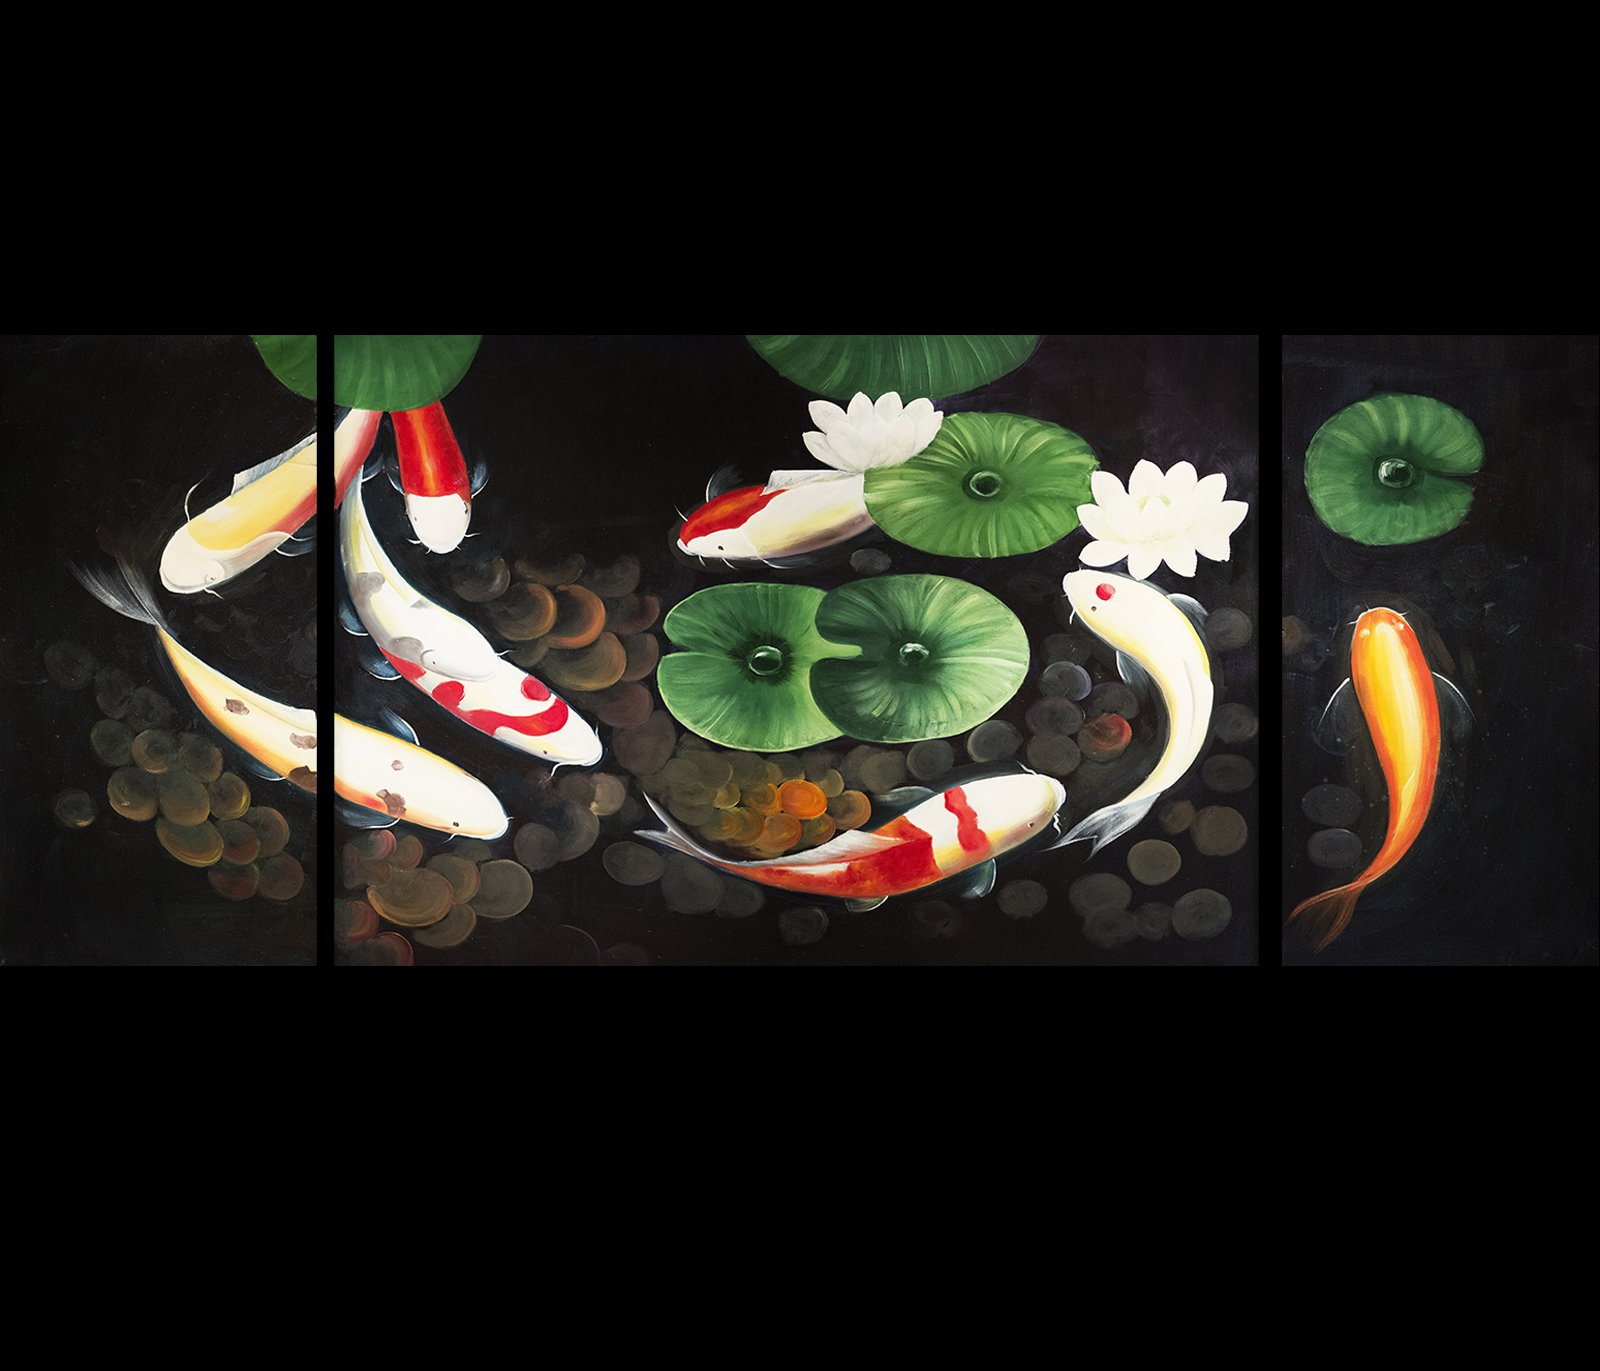 Feng Shui Fish Painting Koi Art Koi Fish Painting Contemporary Art Modern Wall Art Decor Prints On Canvas by Fengshui-paintings.com